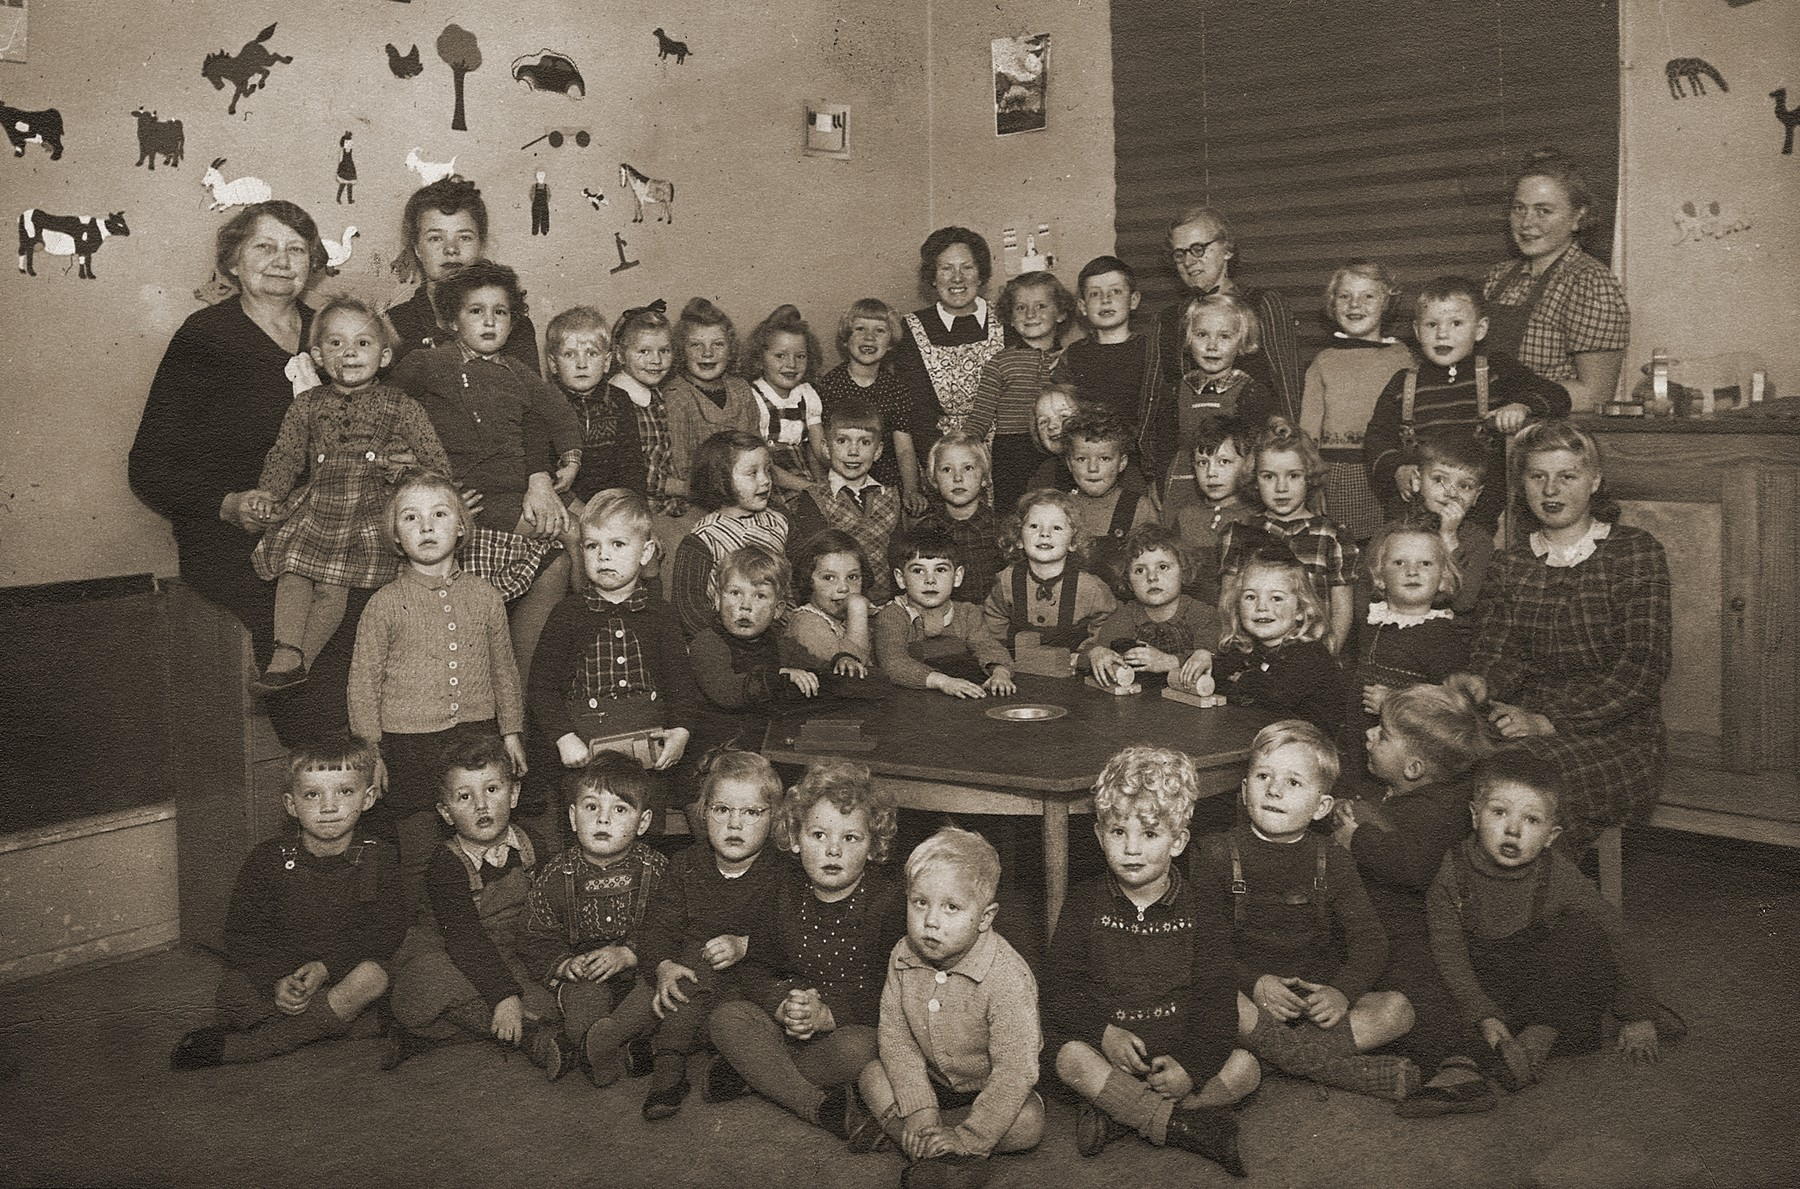 Class portrait of teachers and pupils at a preschool in Copenhagen.  Among those pictured is Gus Goldberger (top row, second from the left), one of the only Jewish children in the class.